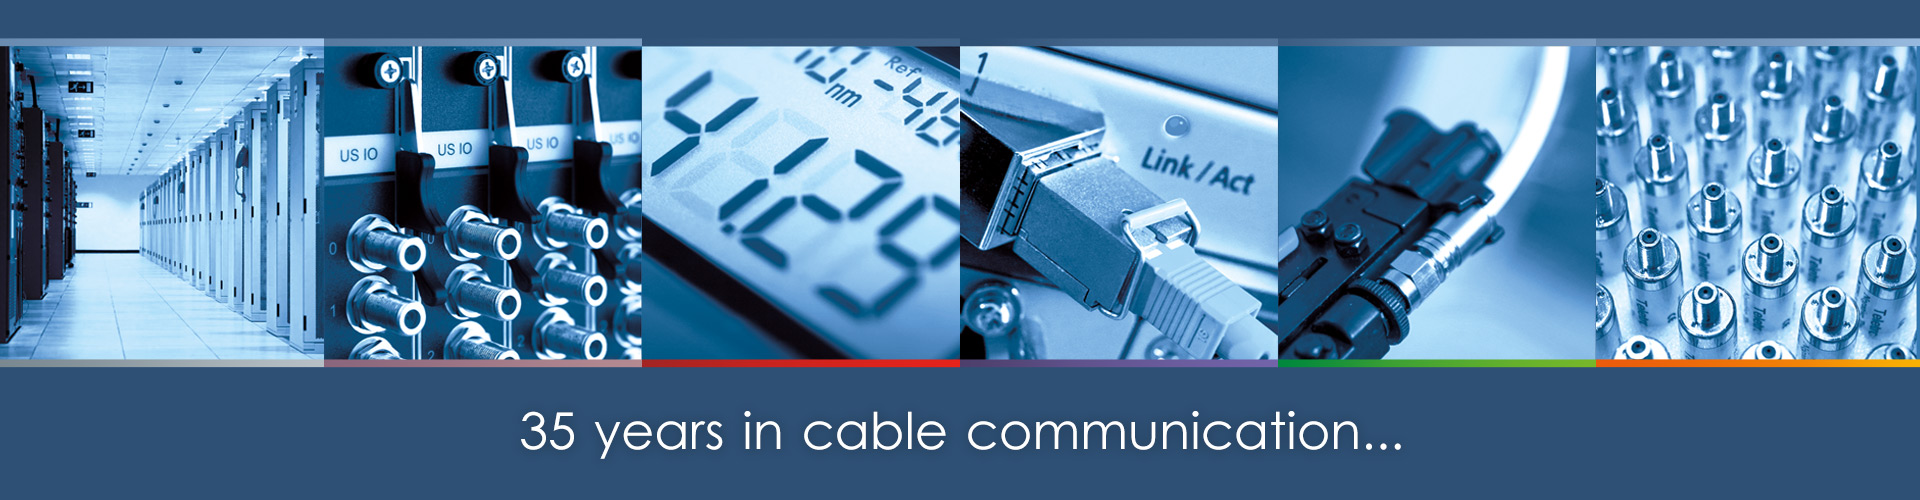 Cable communication, CATV - Teletronik AG